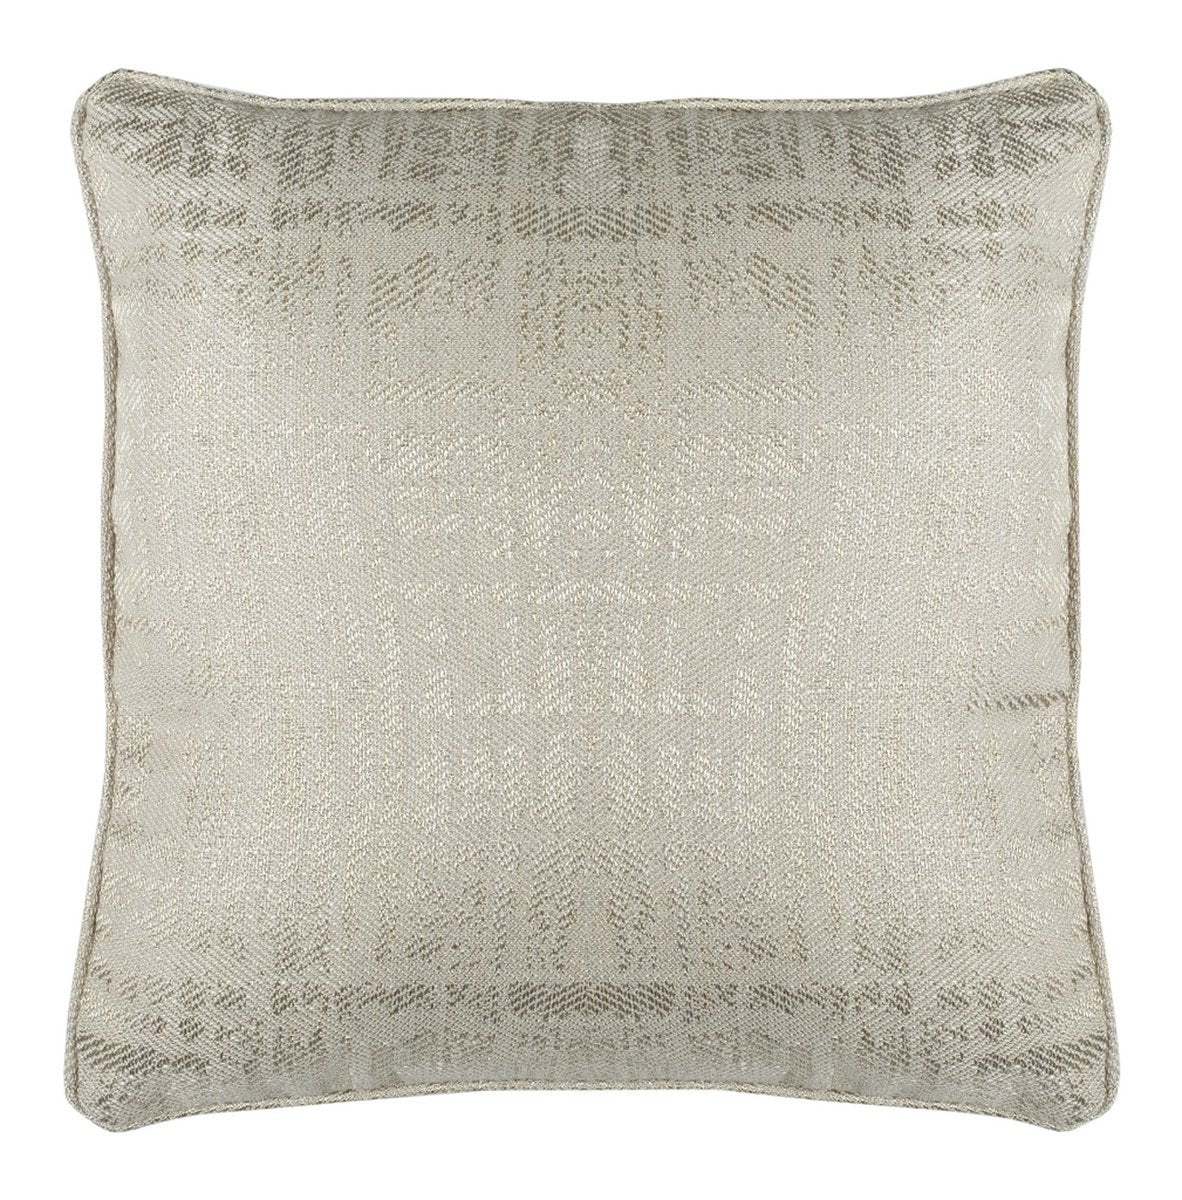 Rosalin Pillow.